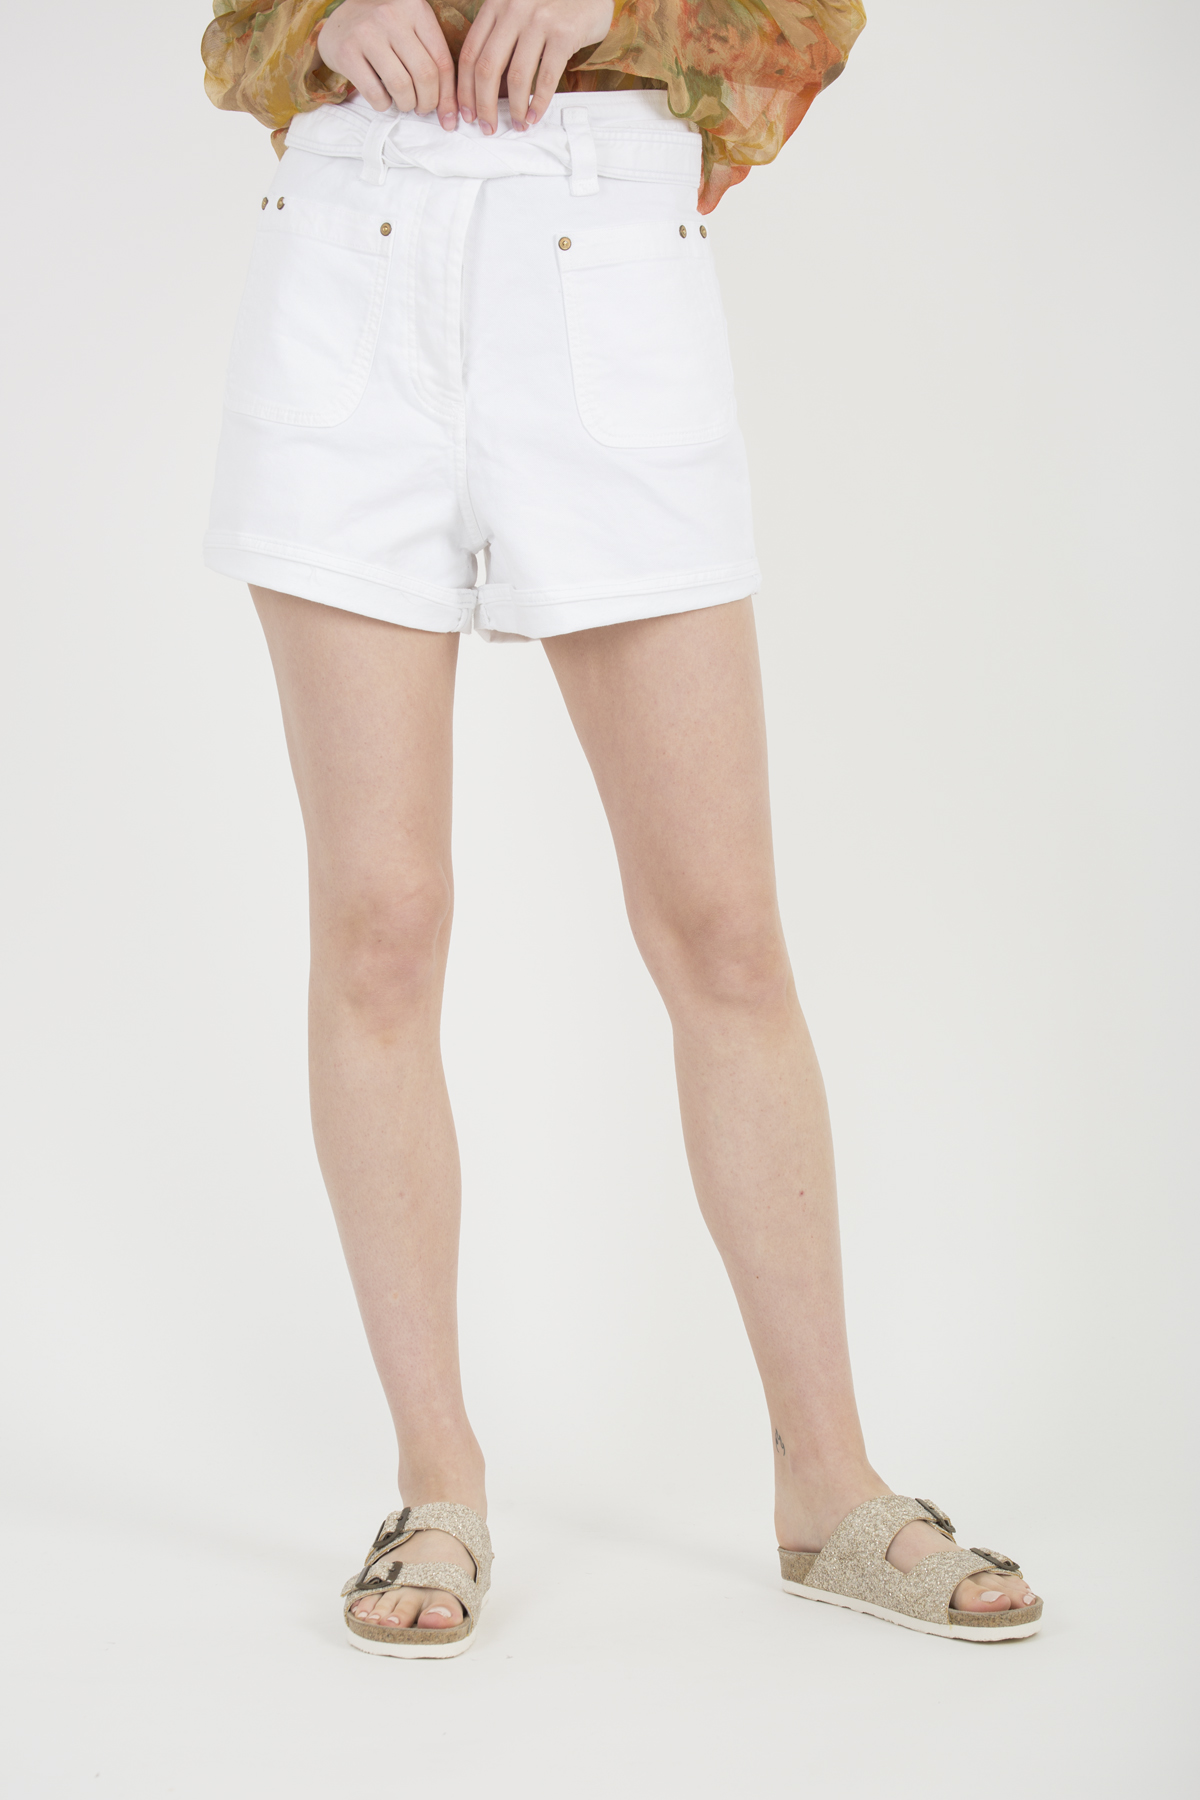 chile-white-jeans-shorts-belted-sessun-matchboxathens